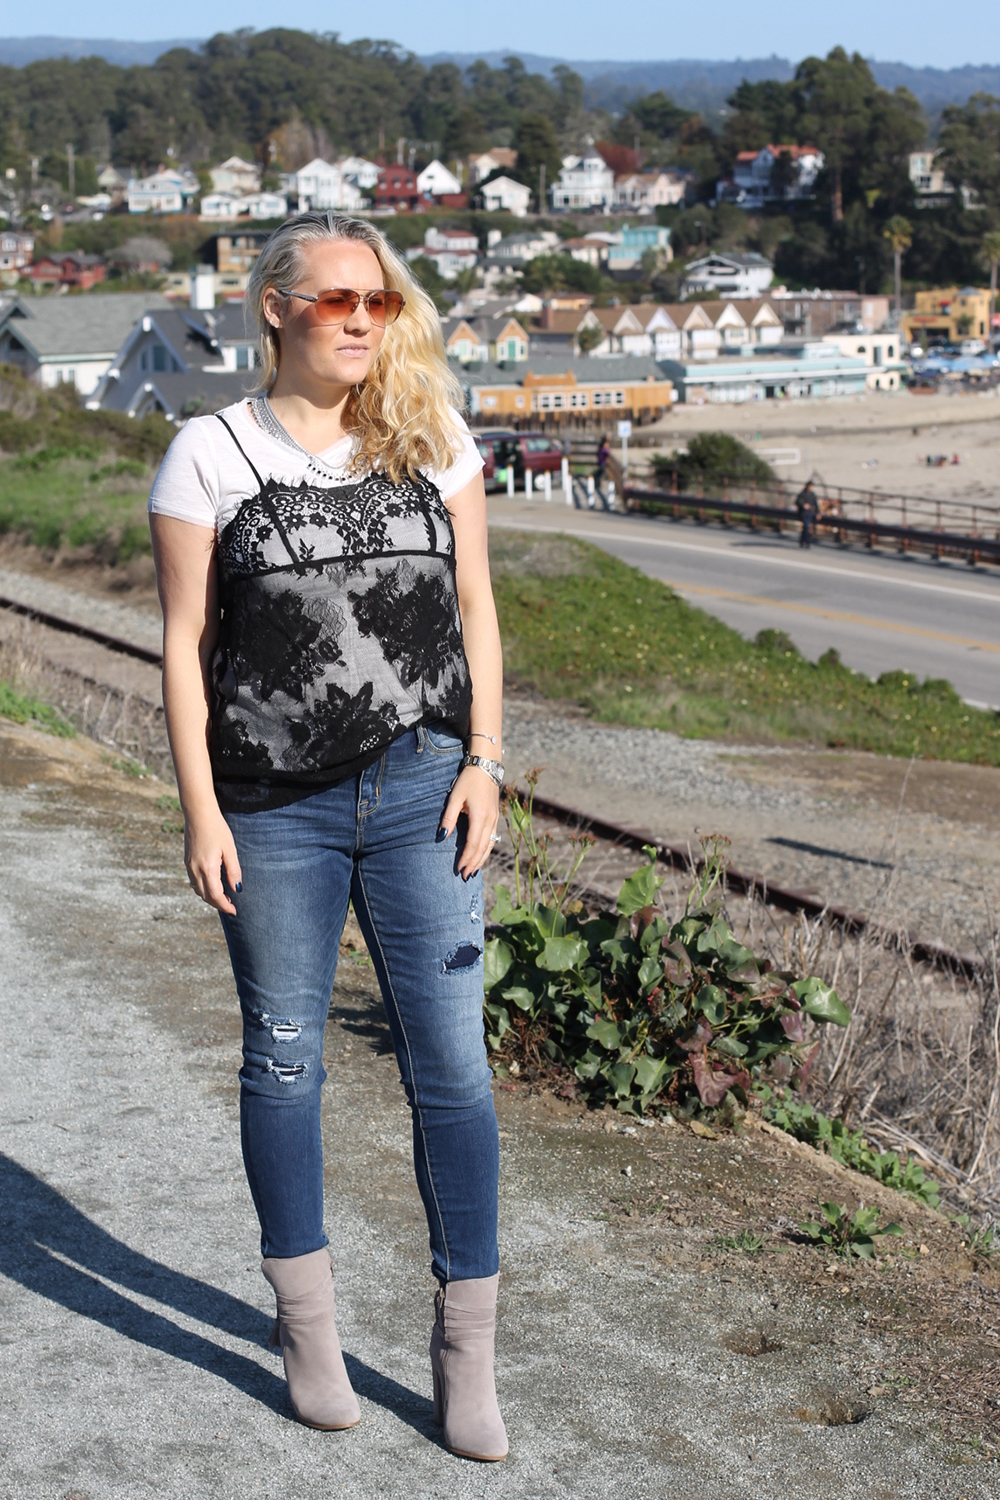 lace-cami-tshirt-target-style-outfit-inspiration-fashion-blogger-have-need-want